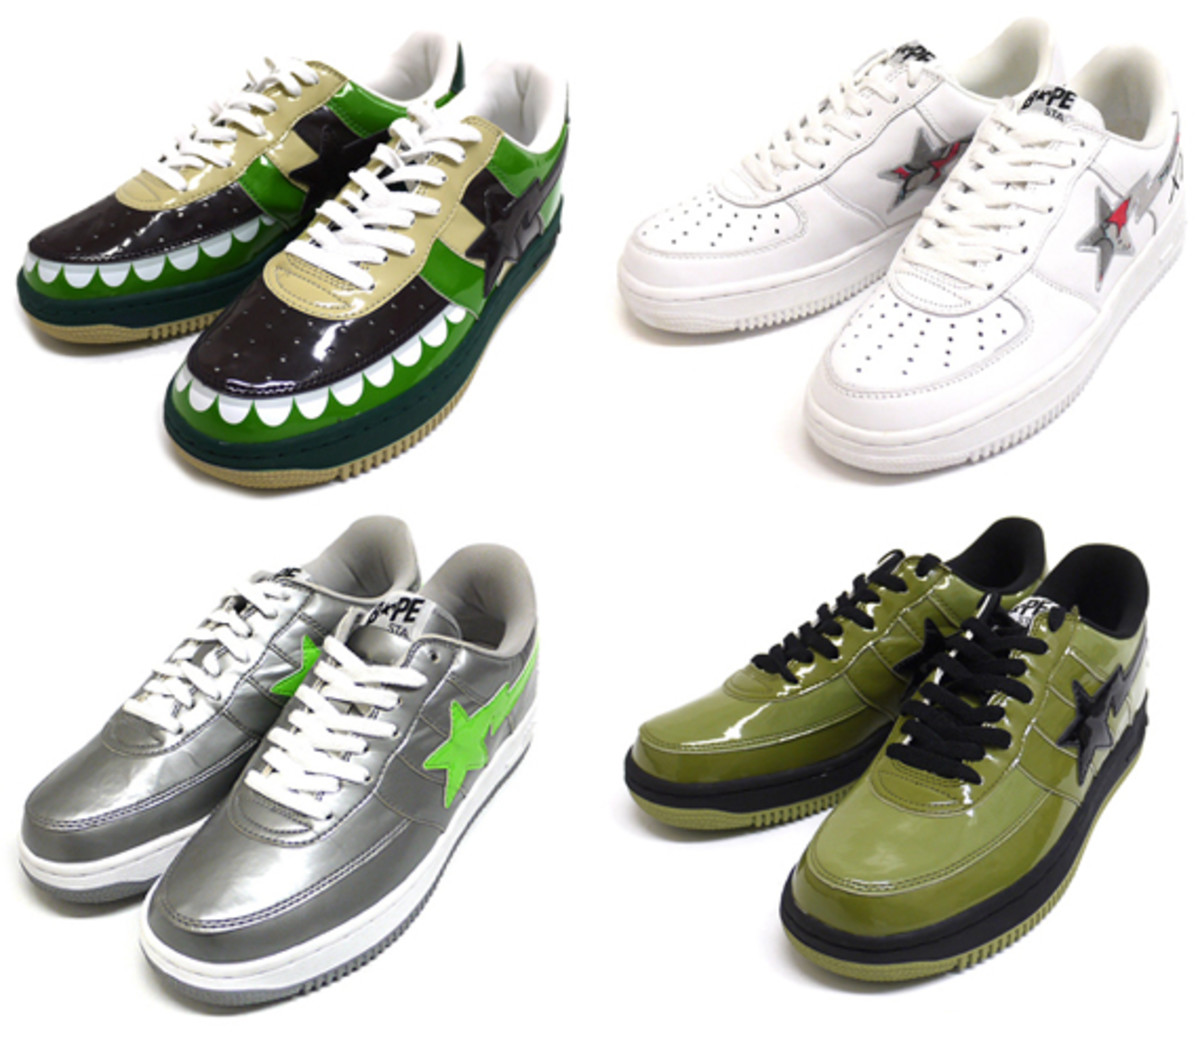 Bapesta for Sale | Bapesta | Bape Shoes for Sale